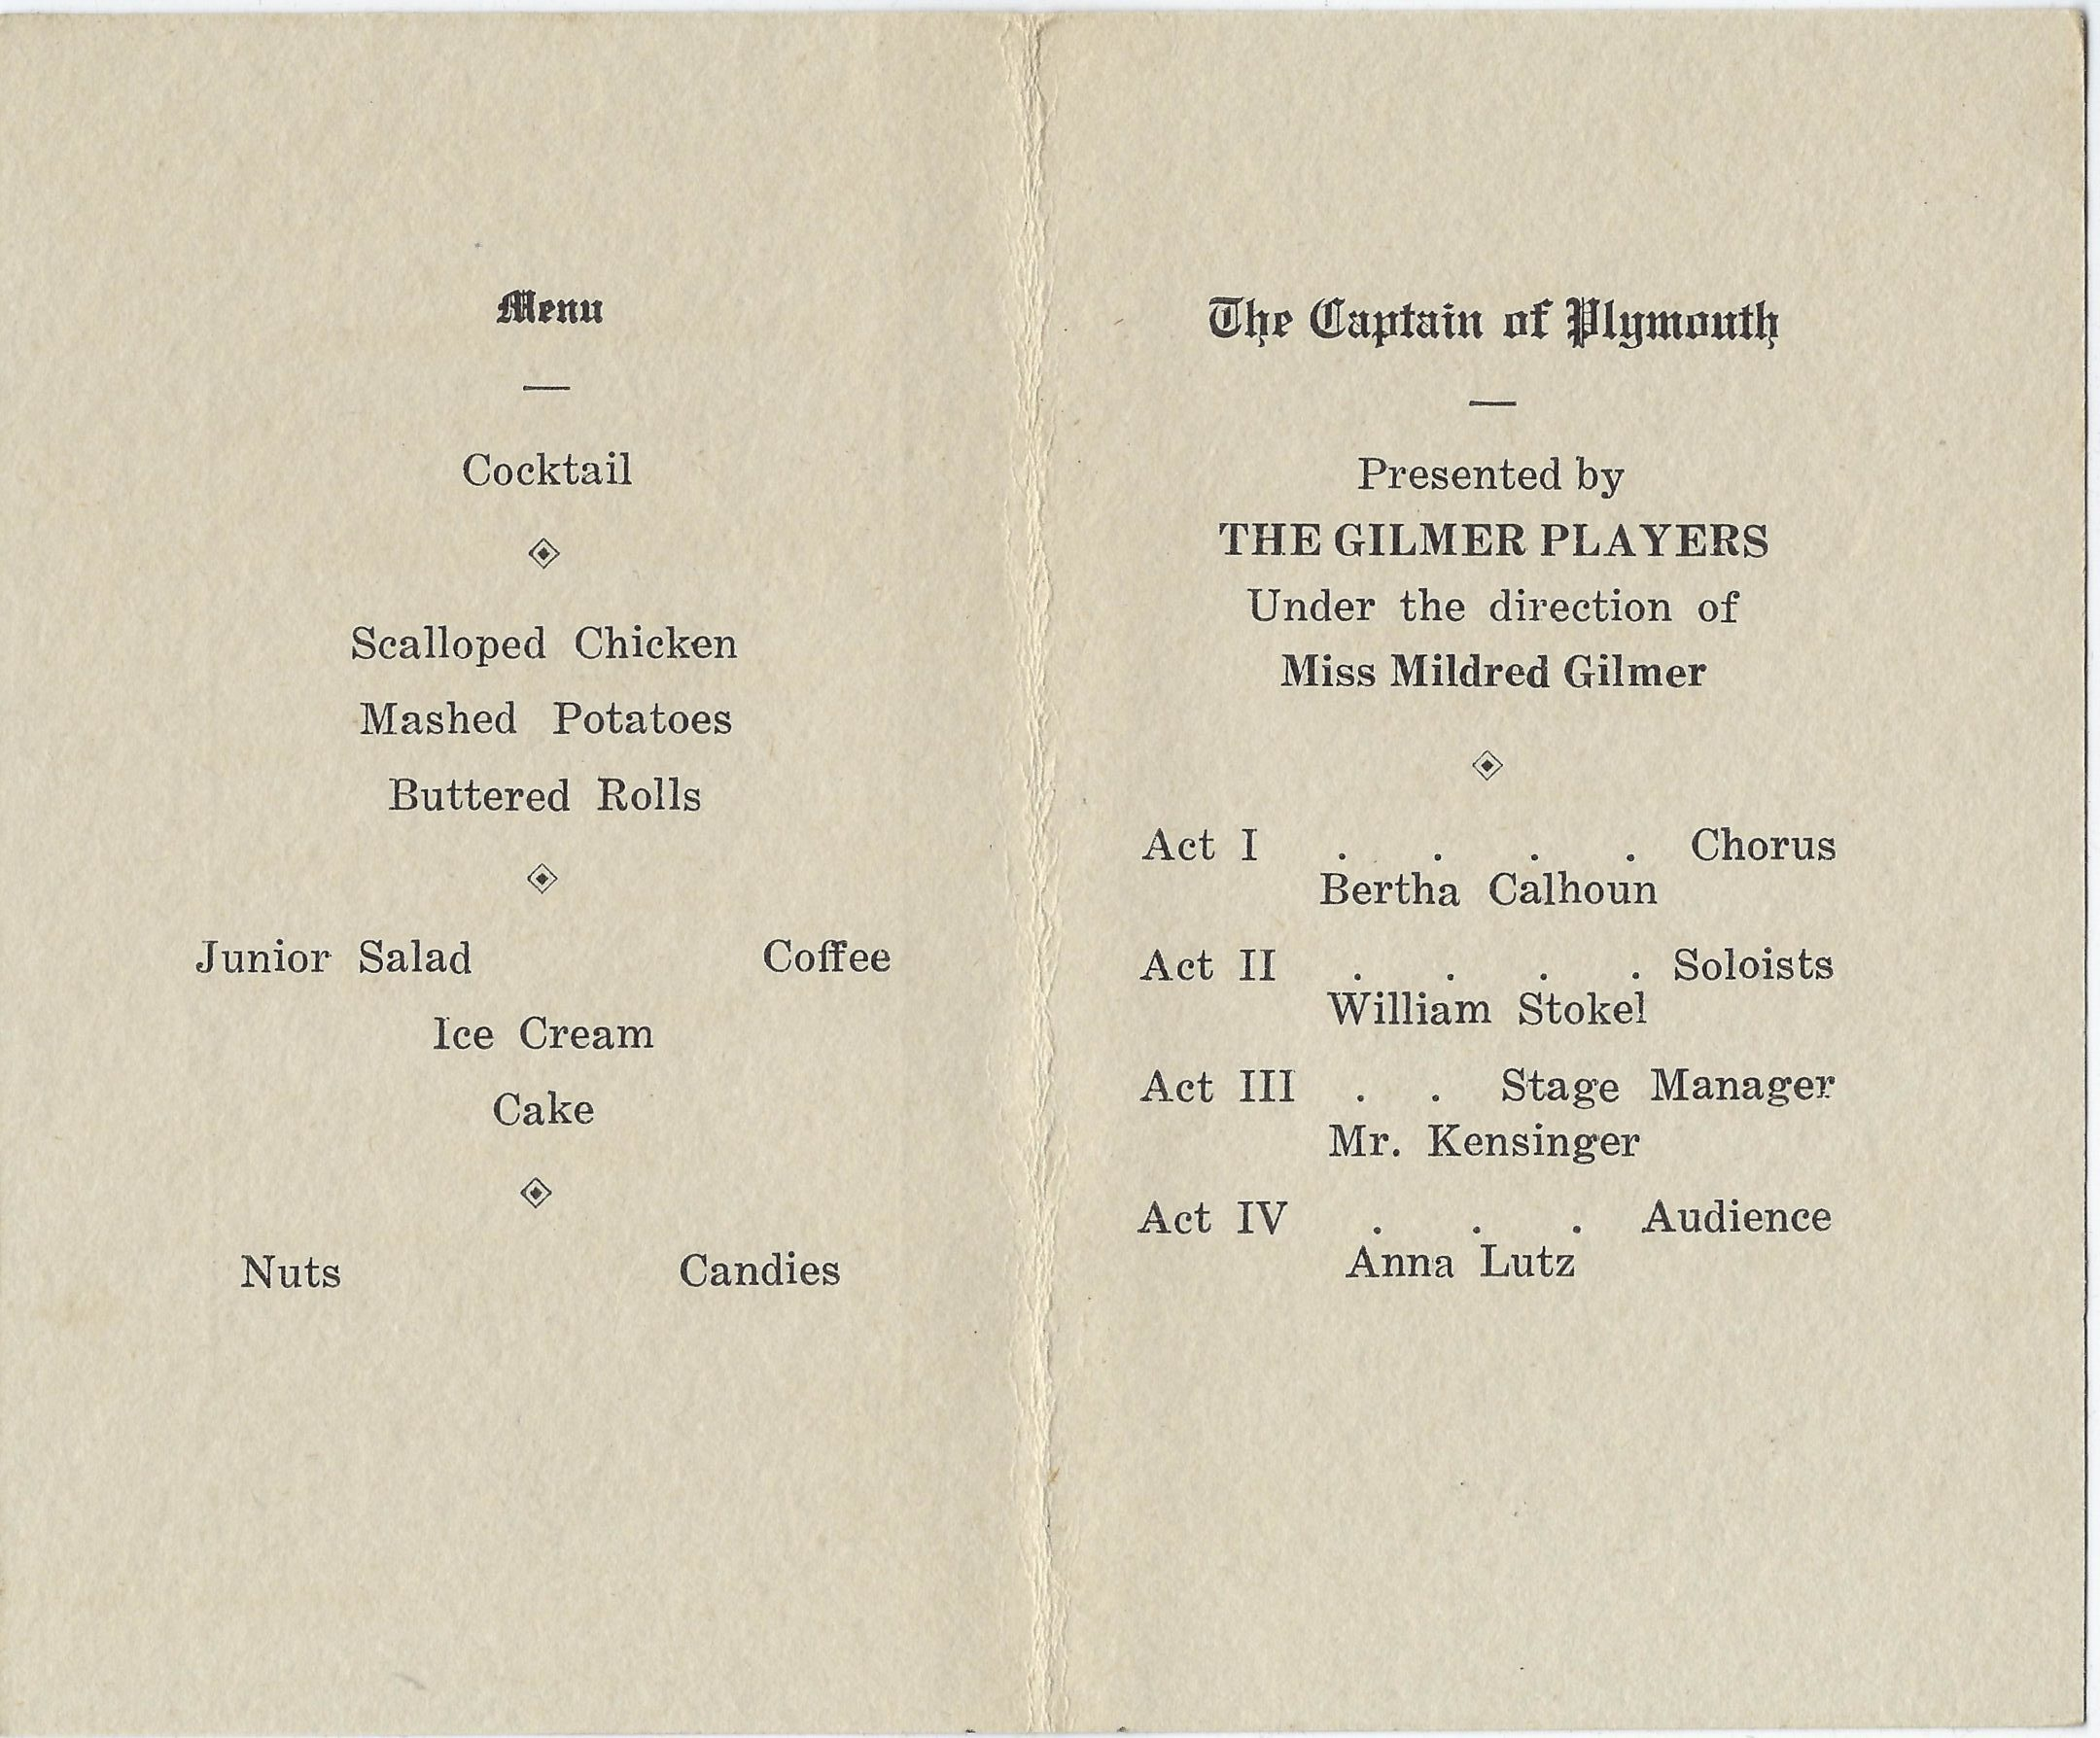 Photo of inside of banquet menu for mount vernon high school class of 1917